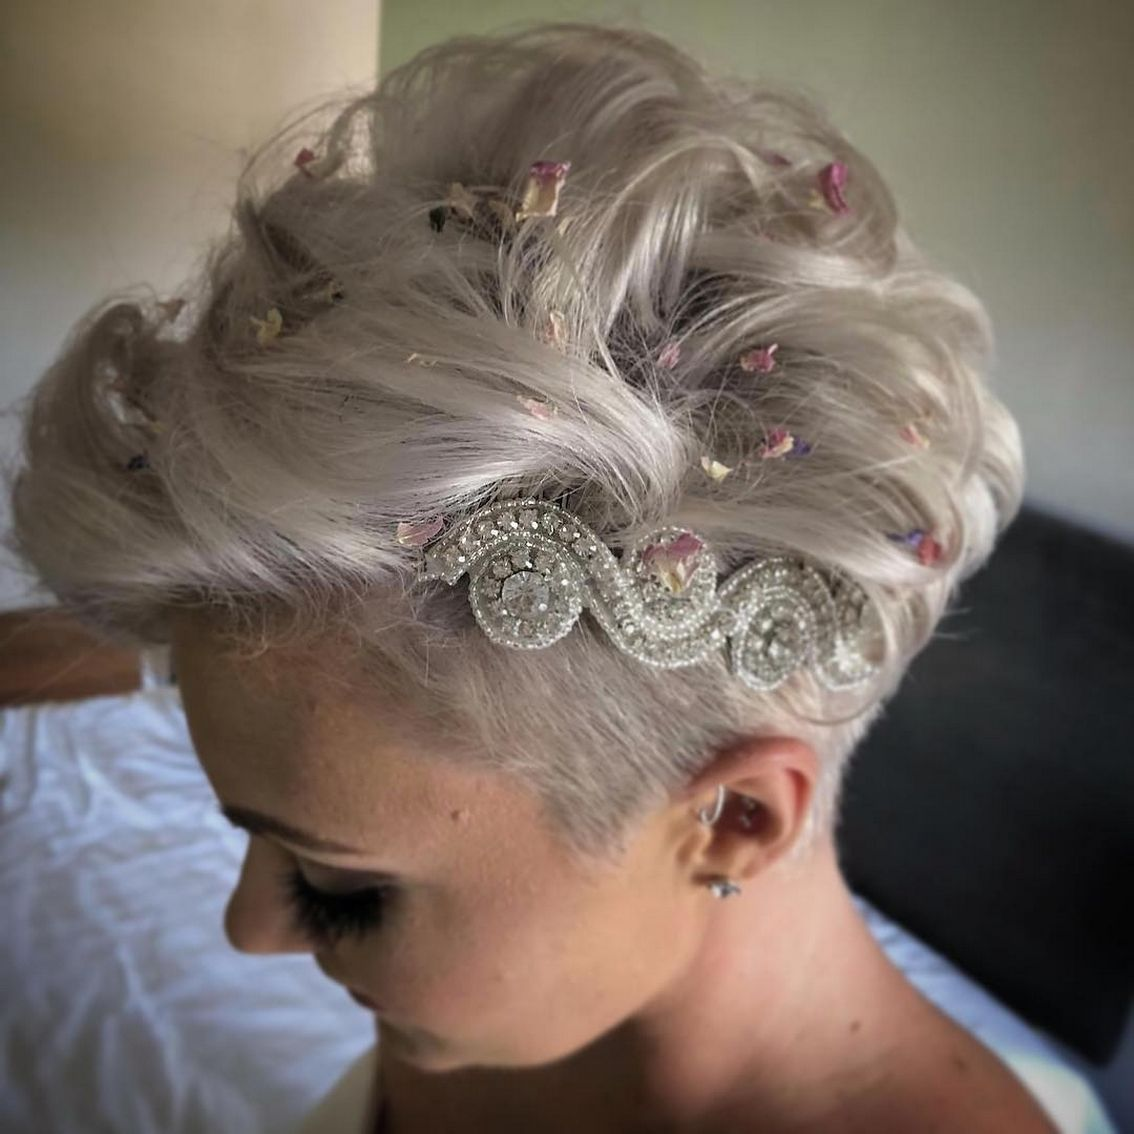 40 Braids Wedding Hairstyles For Short Hair In 2020 Pixie Wedding Hair Short Wedding Hair Short Hair Bride